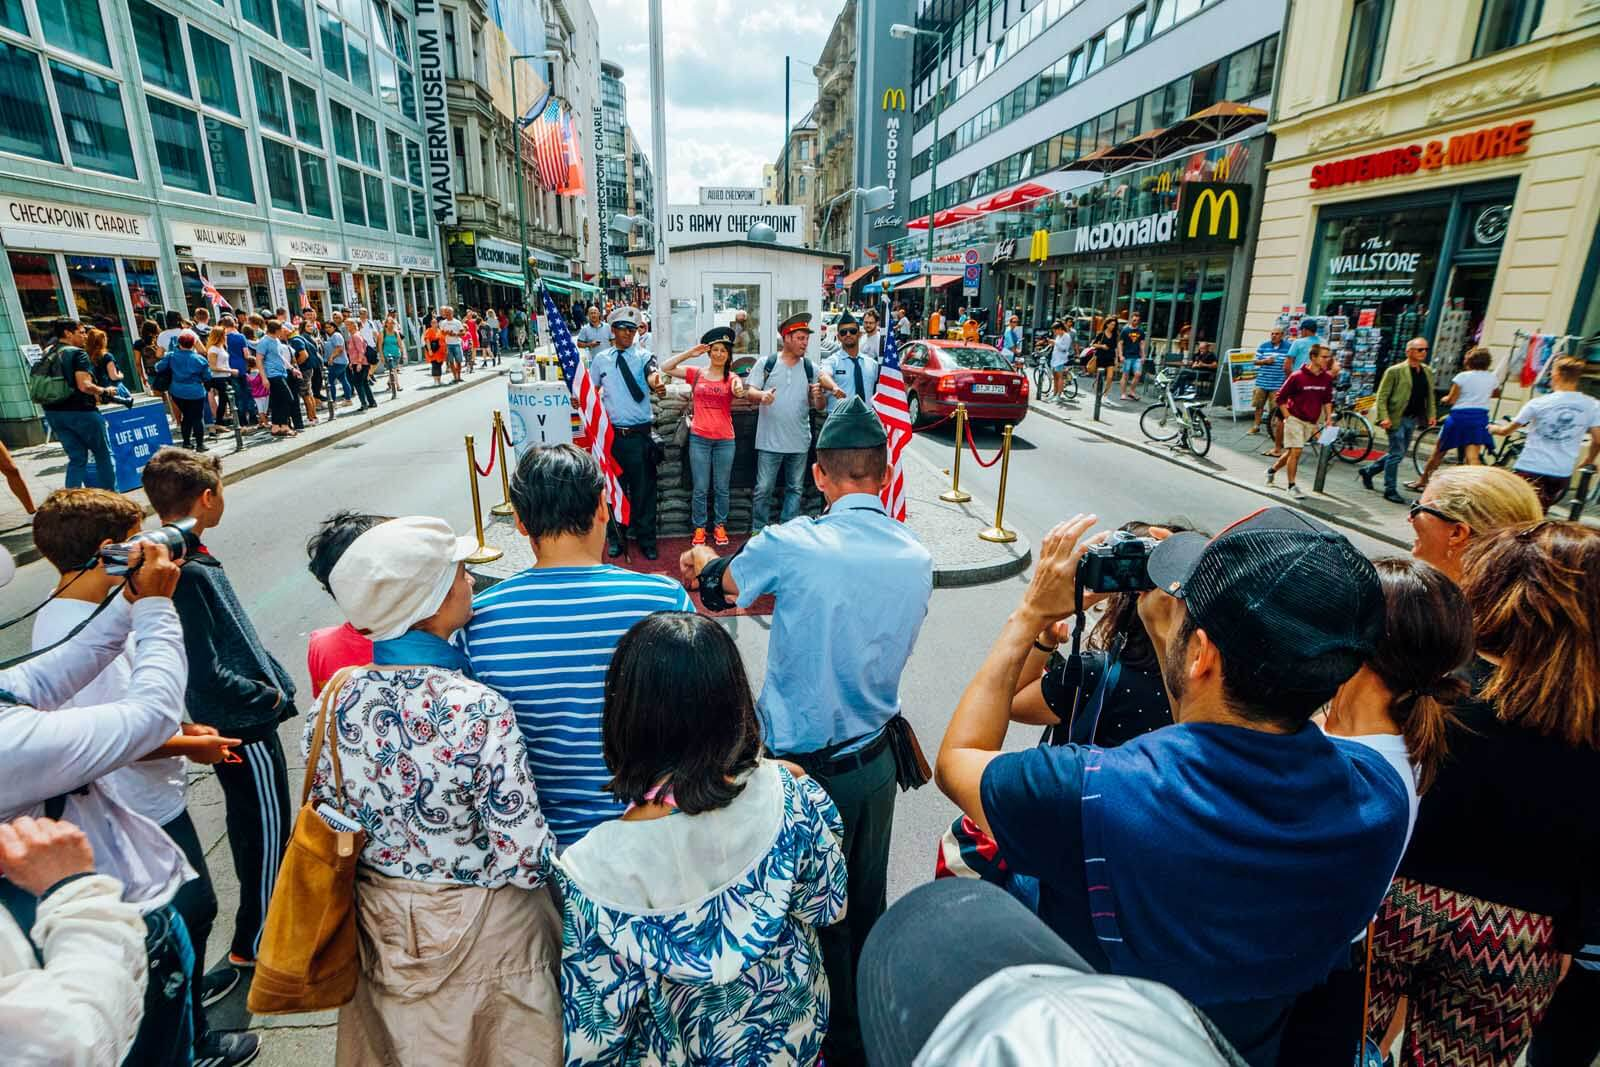 Mass Crowds gather at Checkpoint Charlie in Berlin